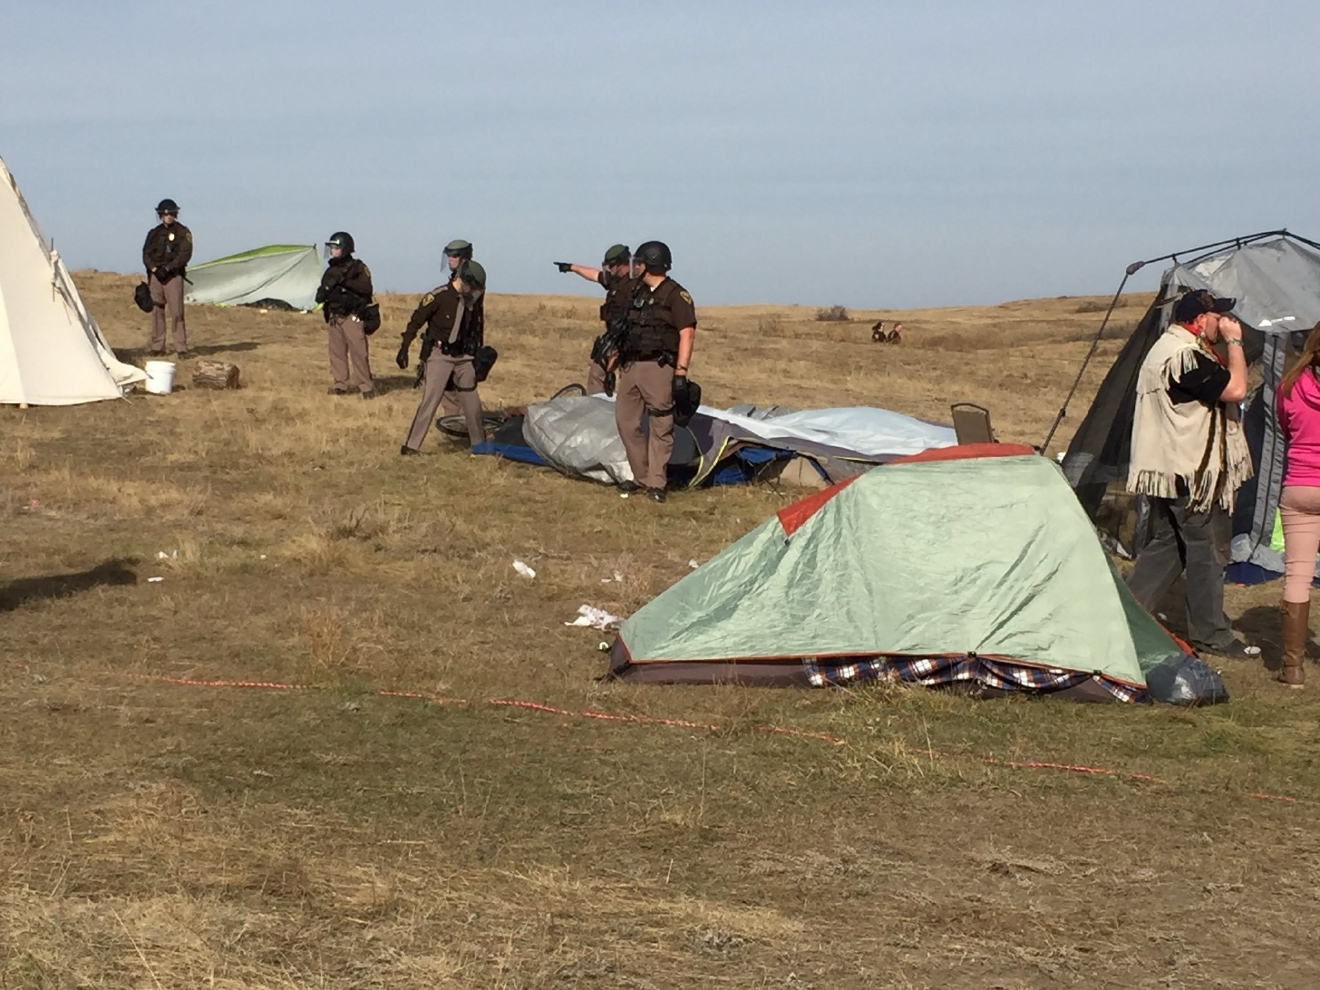 Law enforcement officers move in during a Dakota Access pipeline protest on Thursday, Oct. 27, 2016, near Cannon Ball, N.D. The months-long dispute over the four-state, $3.8 billion pipeline reached a crisis point when the protesters set up camp on land owned by pipeline developer Energy Transfer Partners. The disputed area is just to the north of a more permanent and larger encampment on federally-owned land where hundreds of protesters have camped for months.   Caroline Grueskin/The Bismarck Tribune via AP)